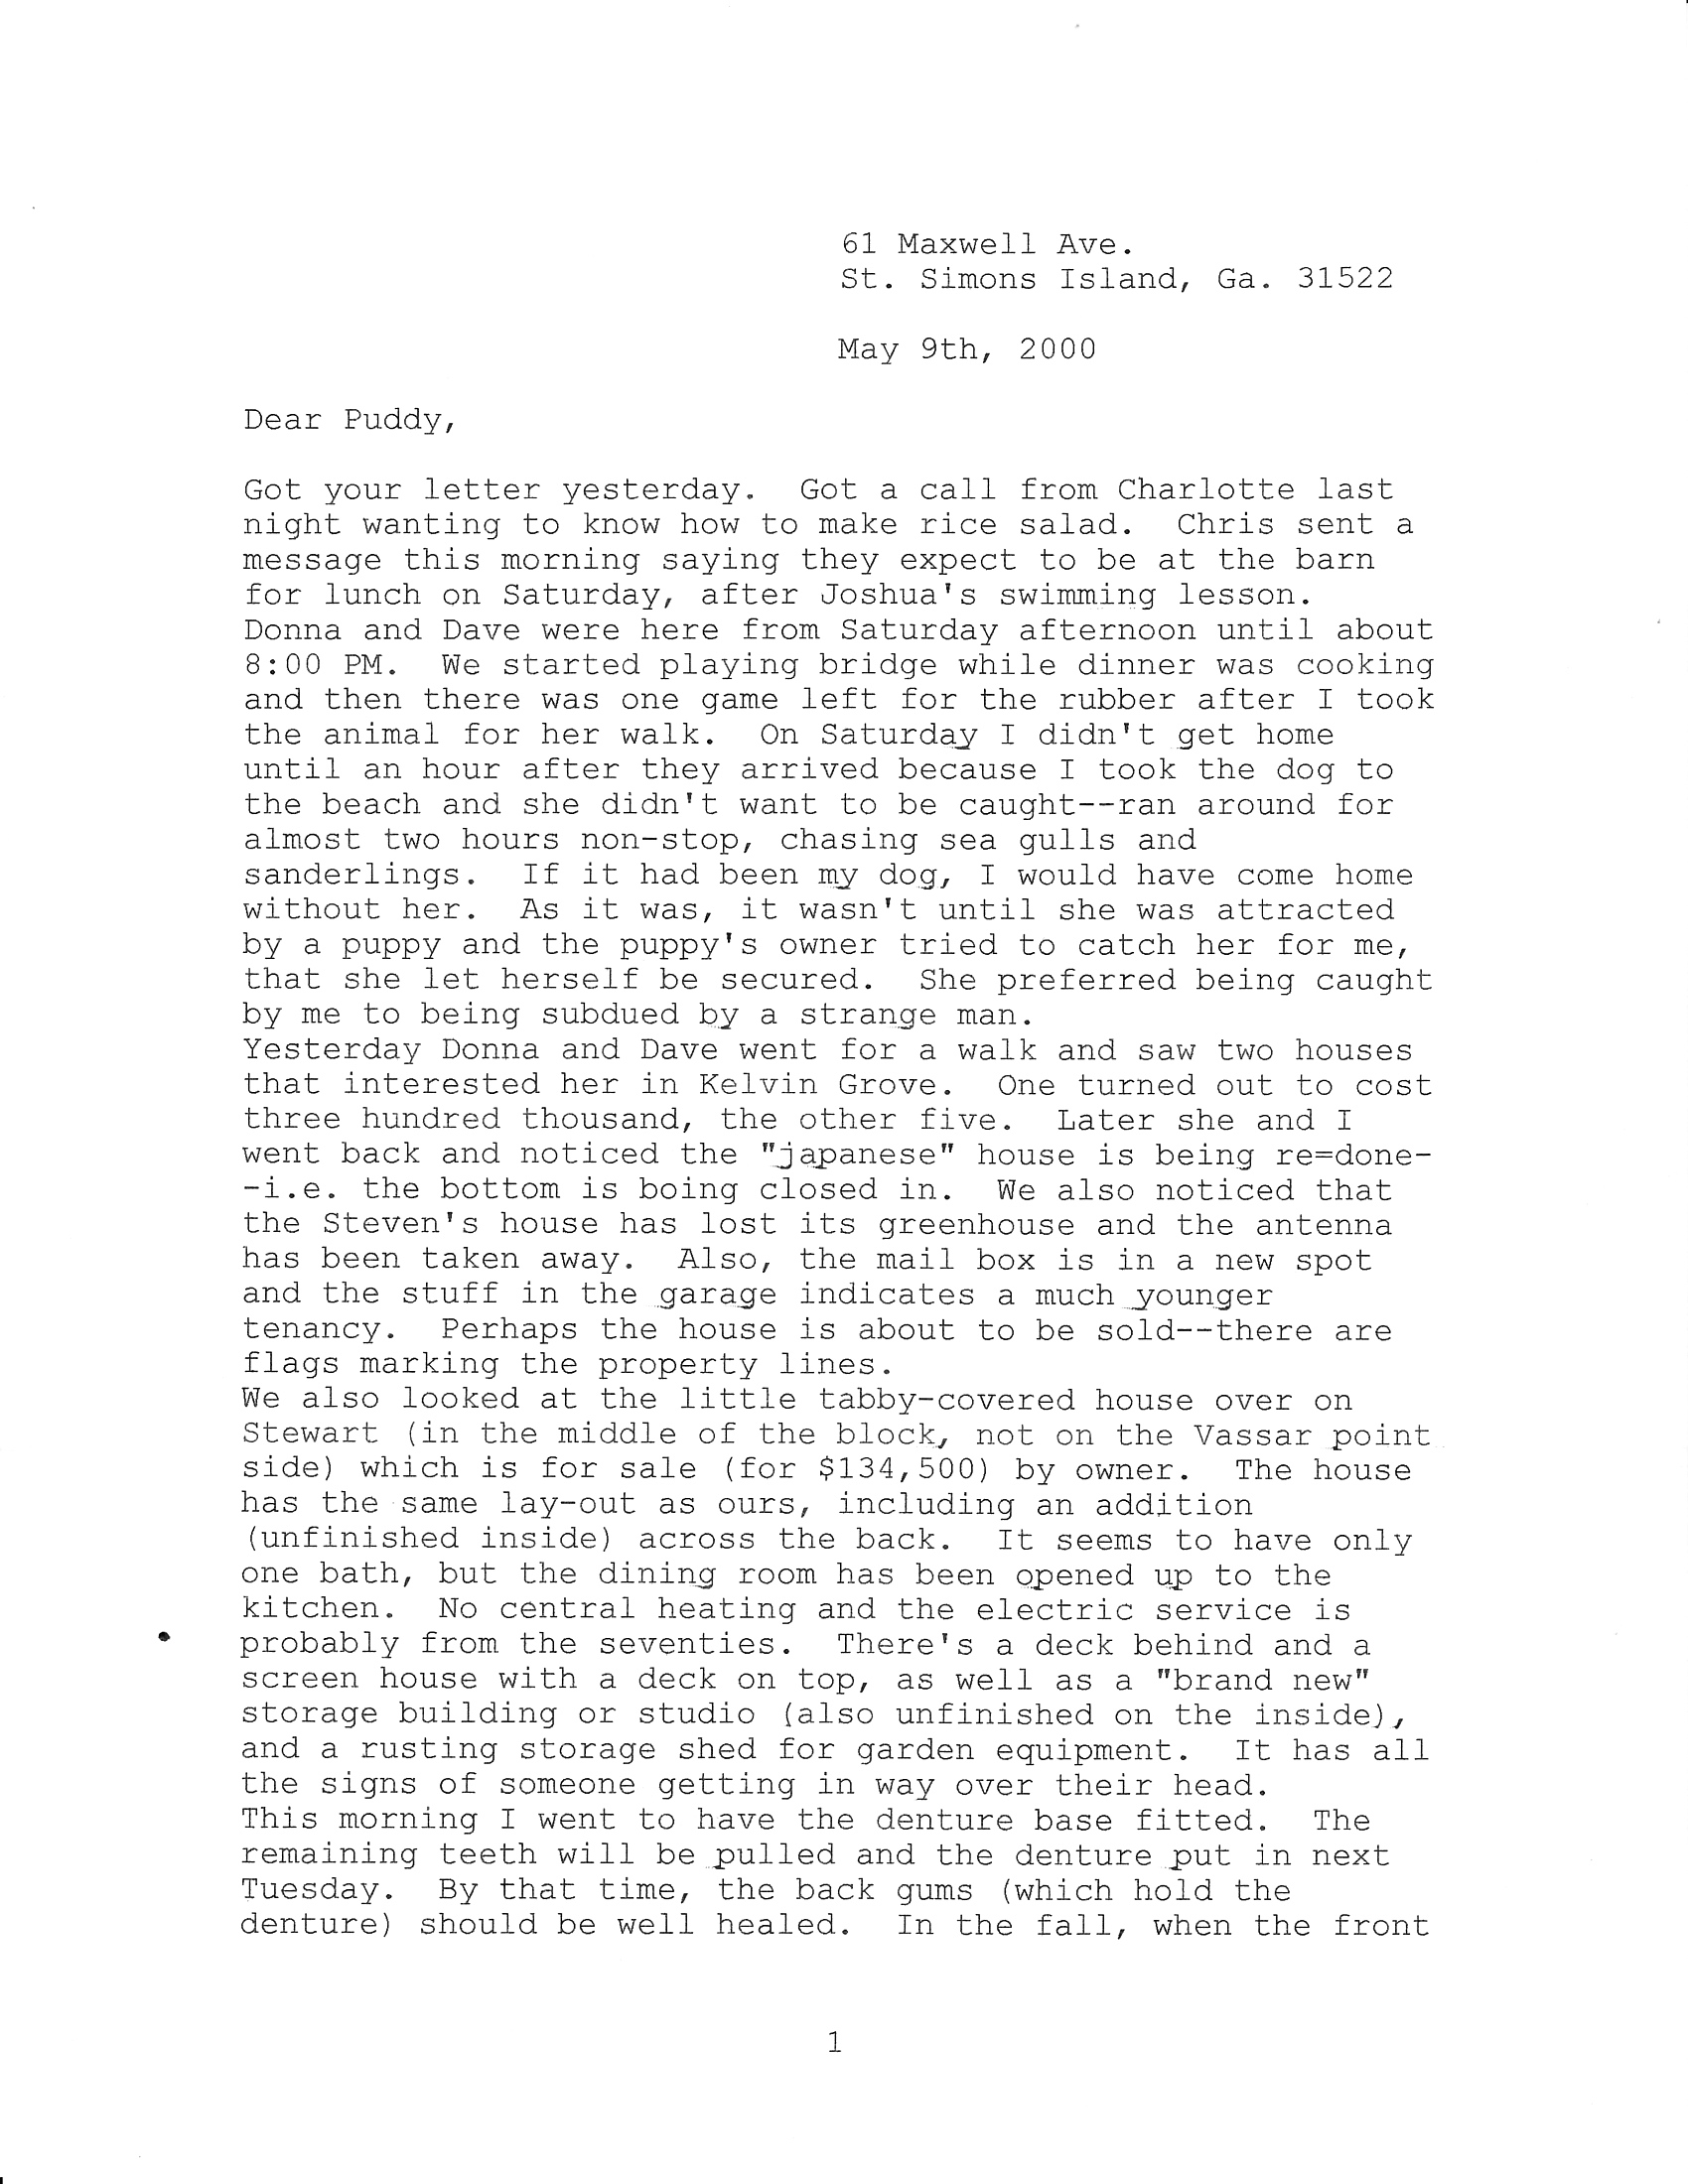 May 2000 Letters